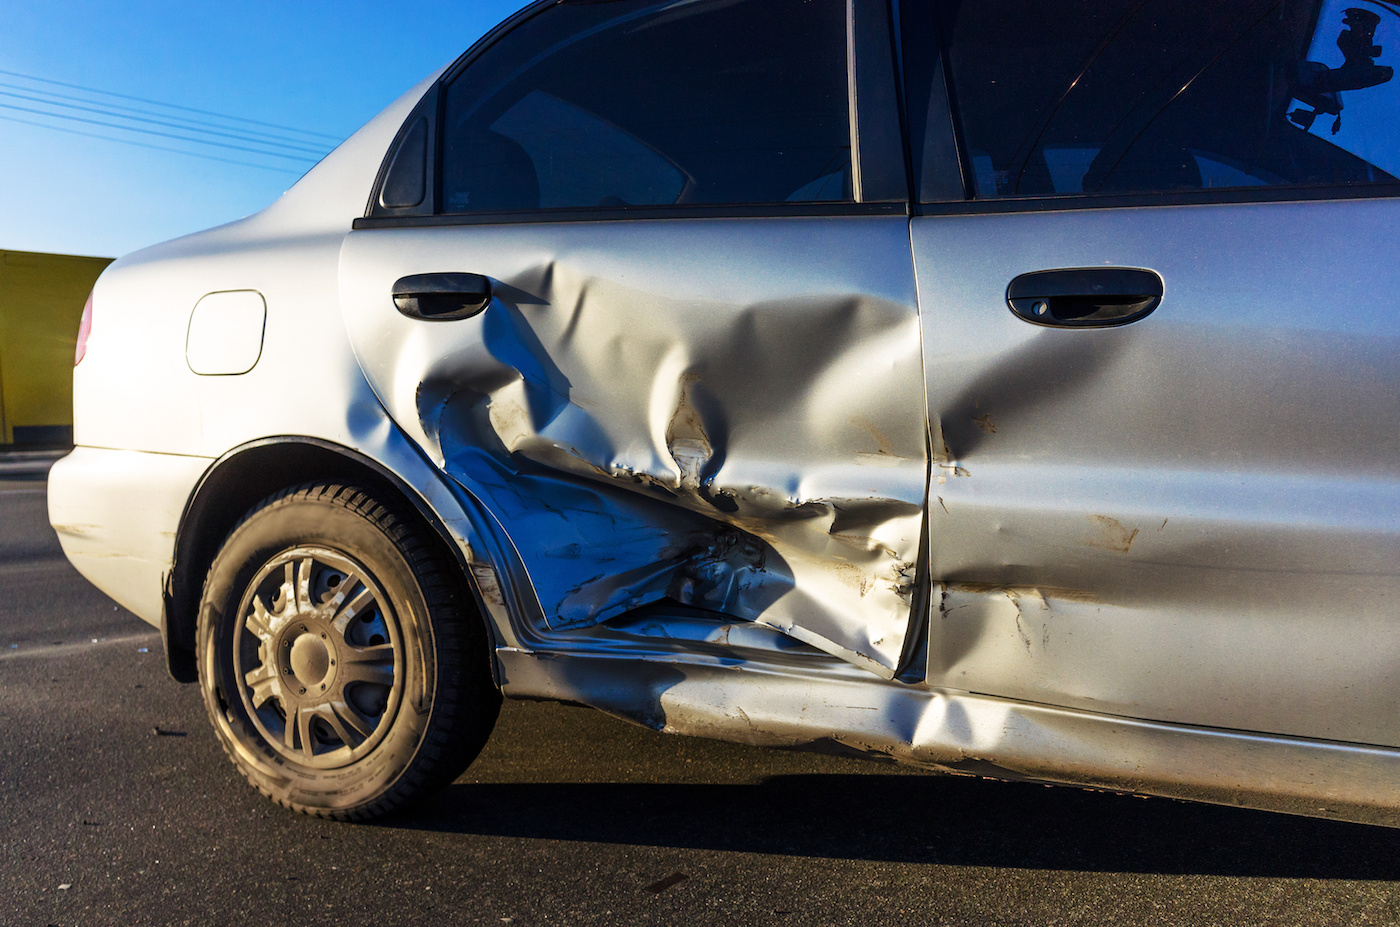 Vehicle crash damage